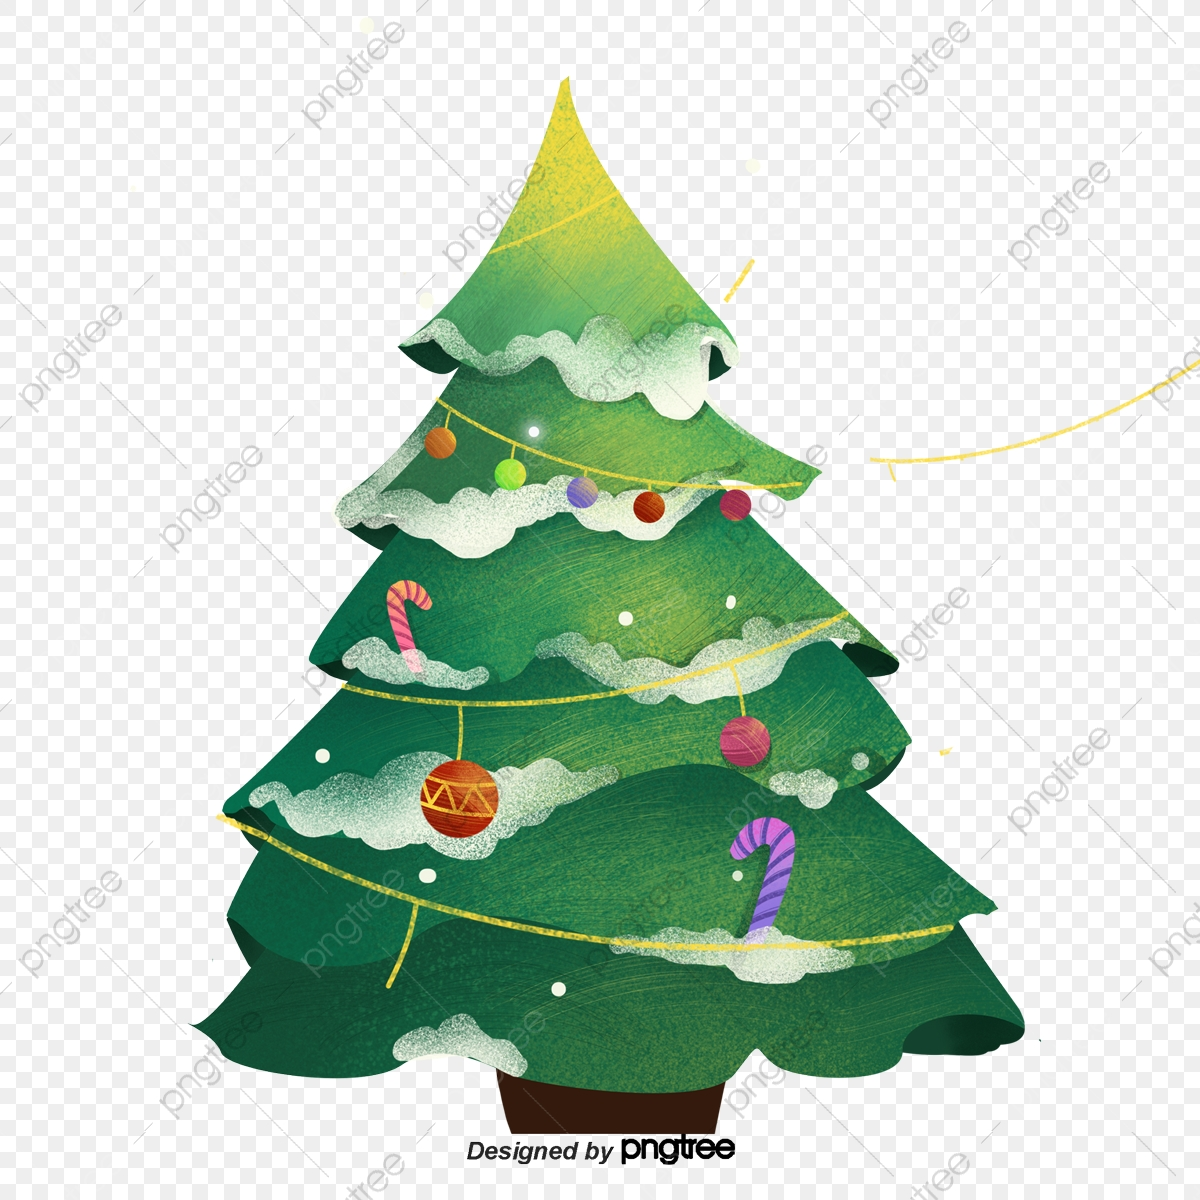 cartoon christmas tree png vector psd and clipart with transparent background for free download pngtree https pngtree com freepng cartoon christmas tree 4879844 html